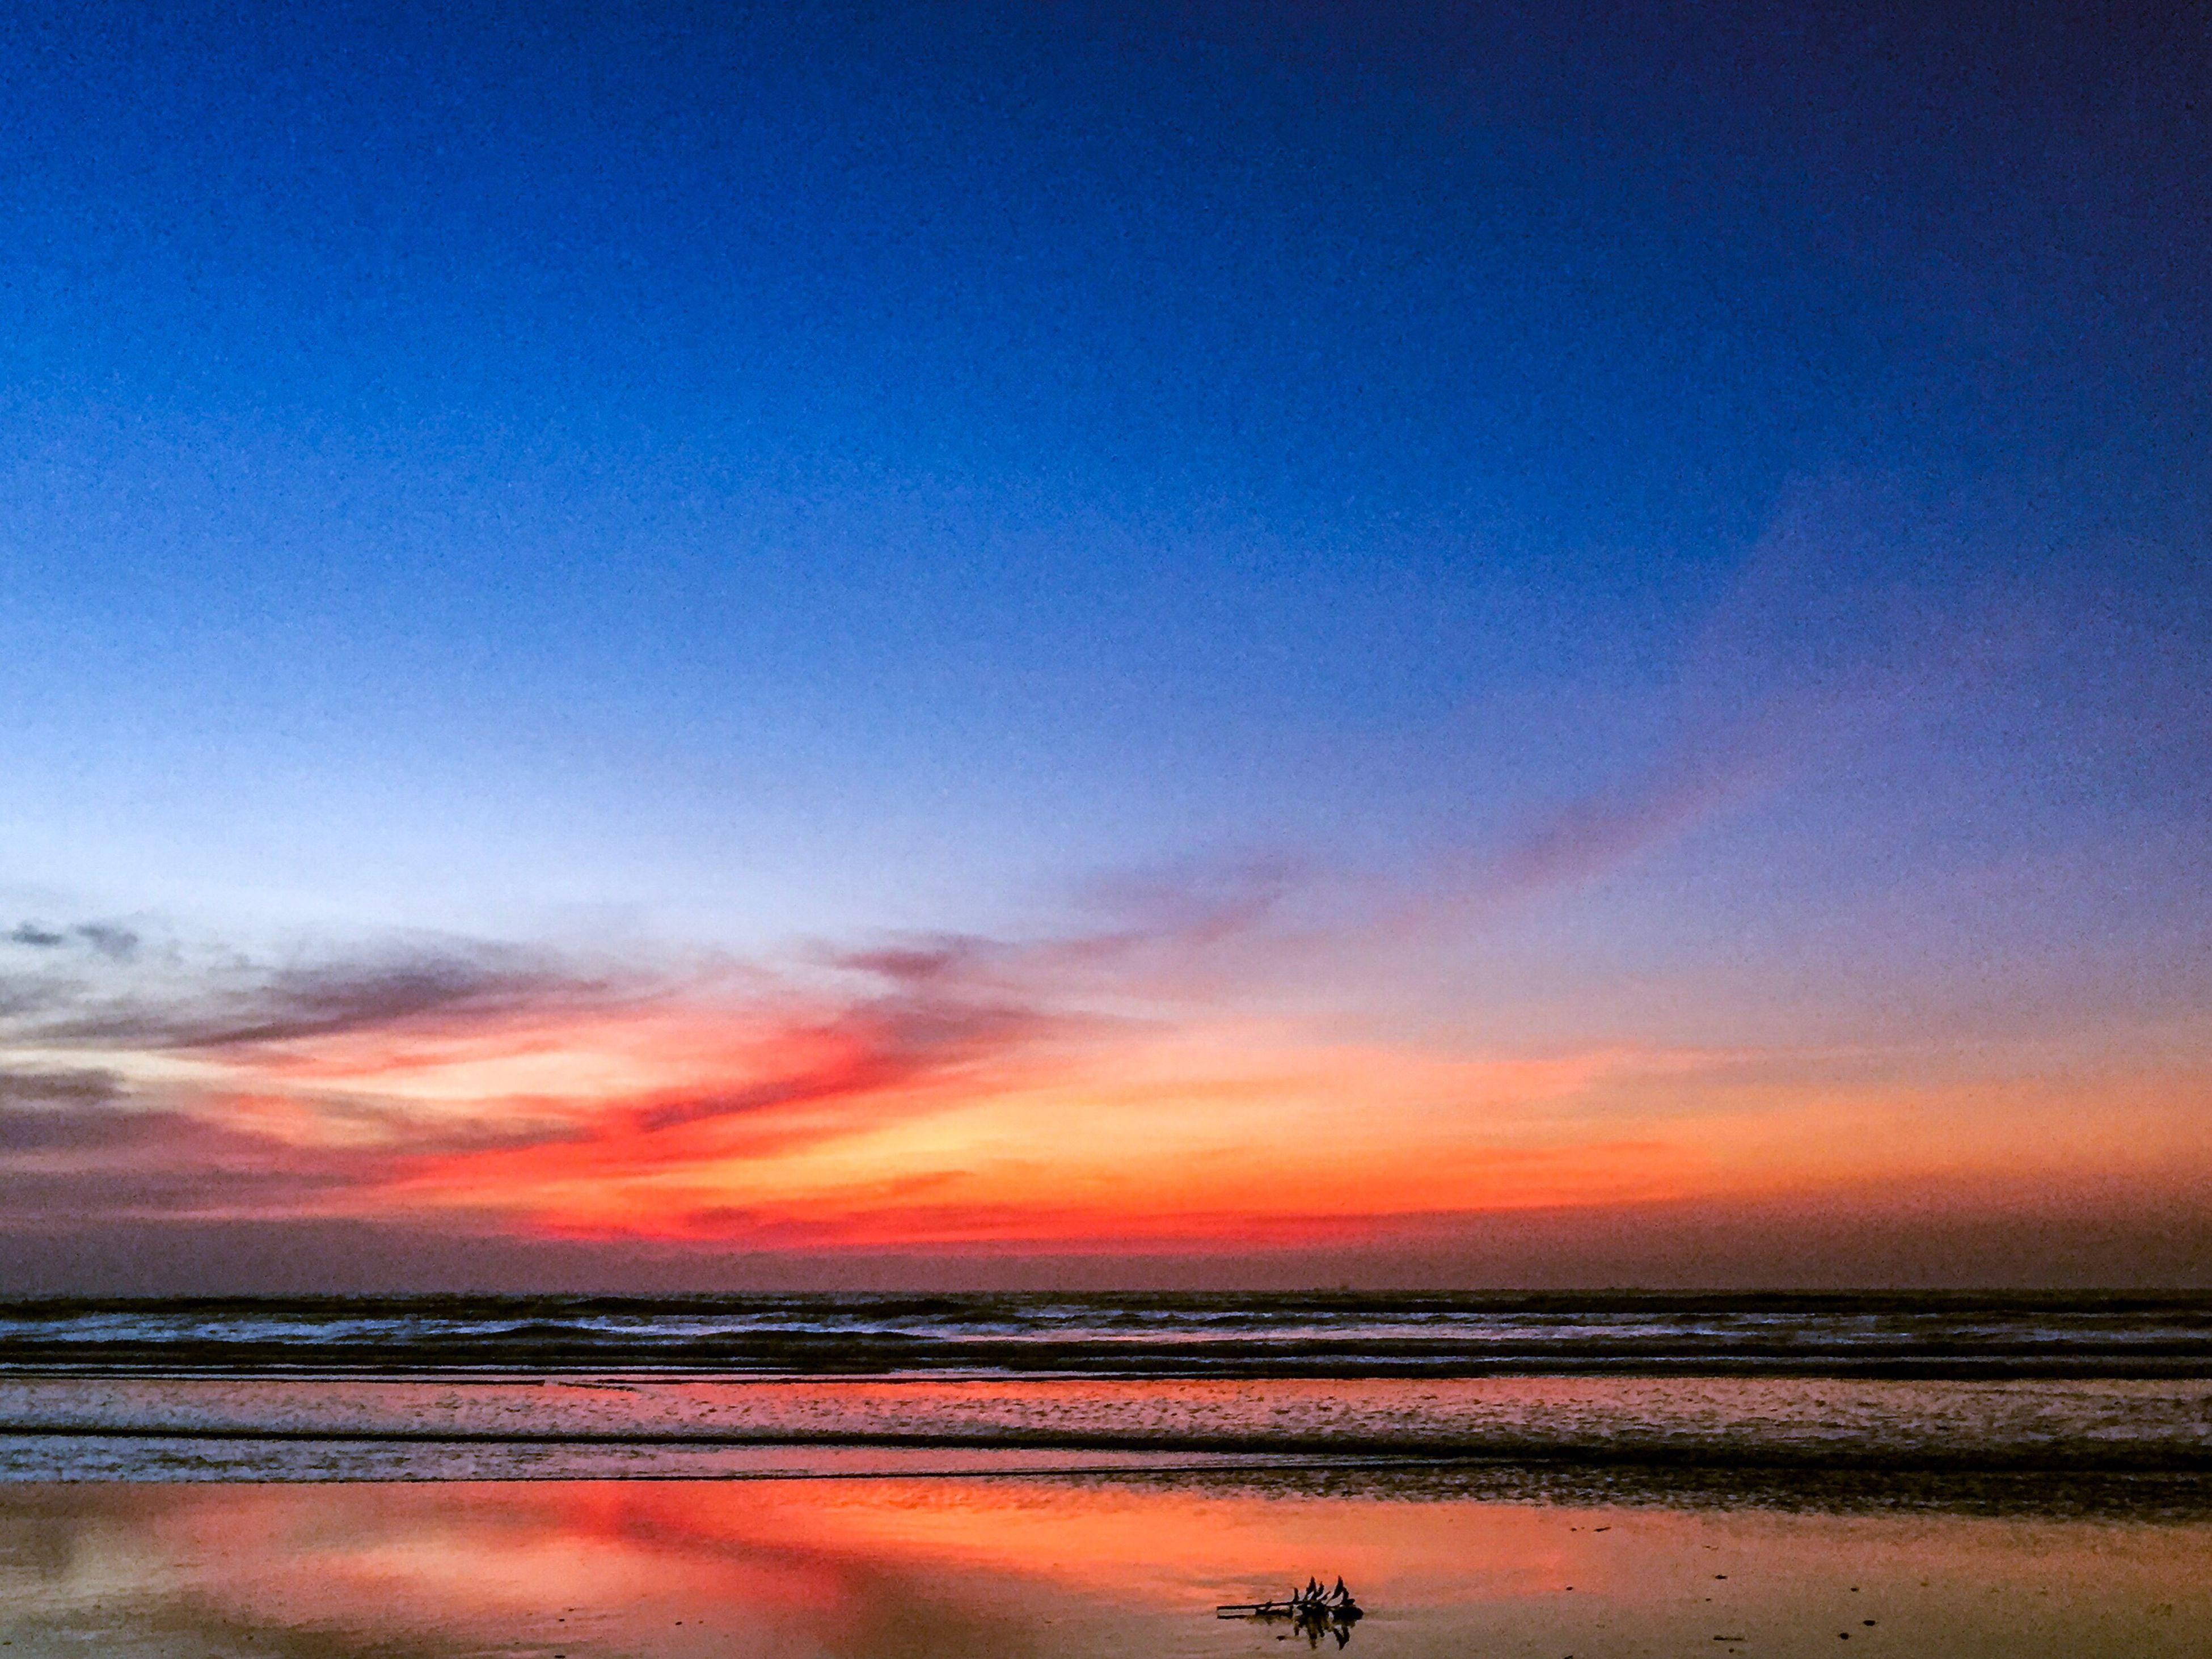 water, sunset, reflection, sea, beauty in nature, tranquility, blue, sky, nature, scenics, tranquil scene, beach, idyllic, no people, outdoors, silhouette, horizon over water, day